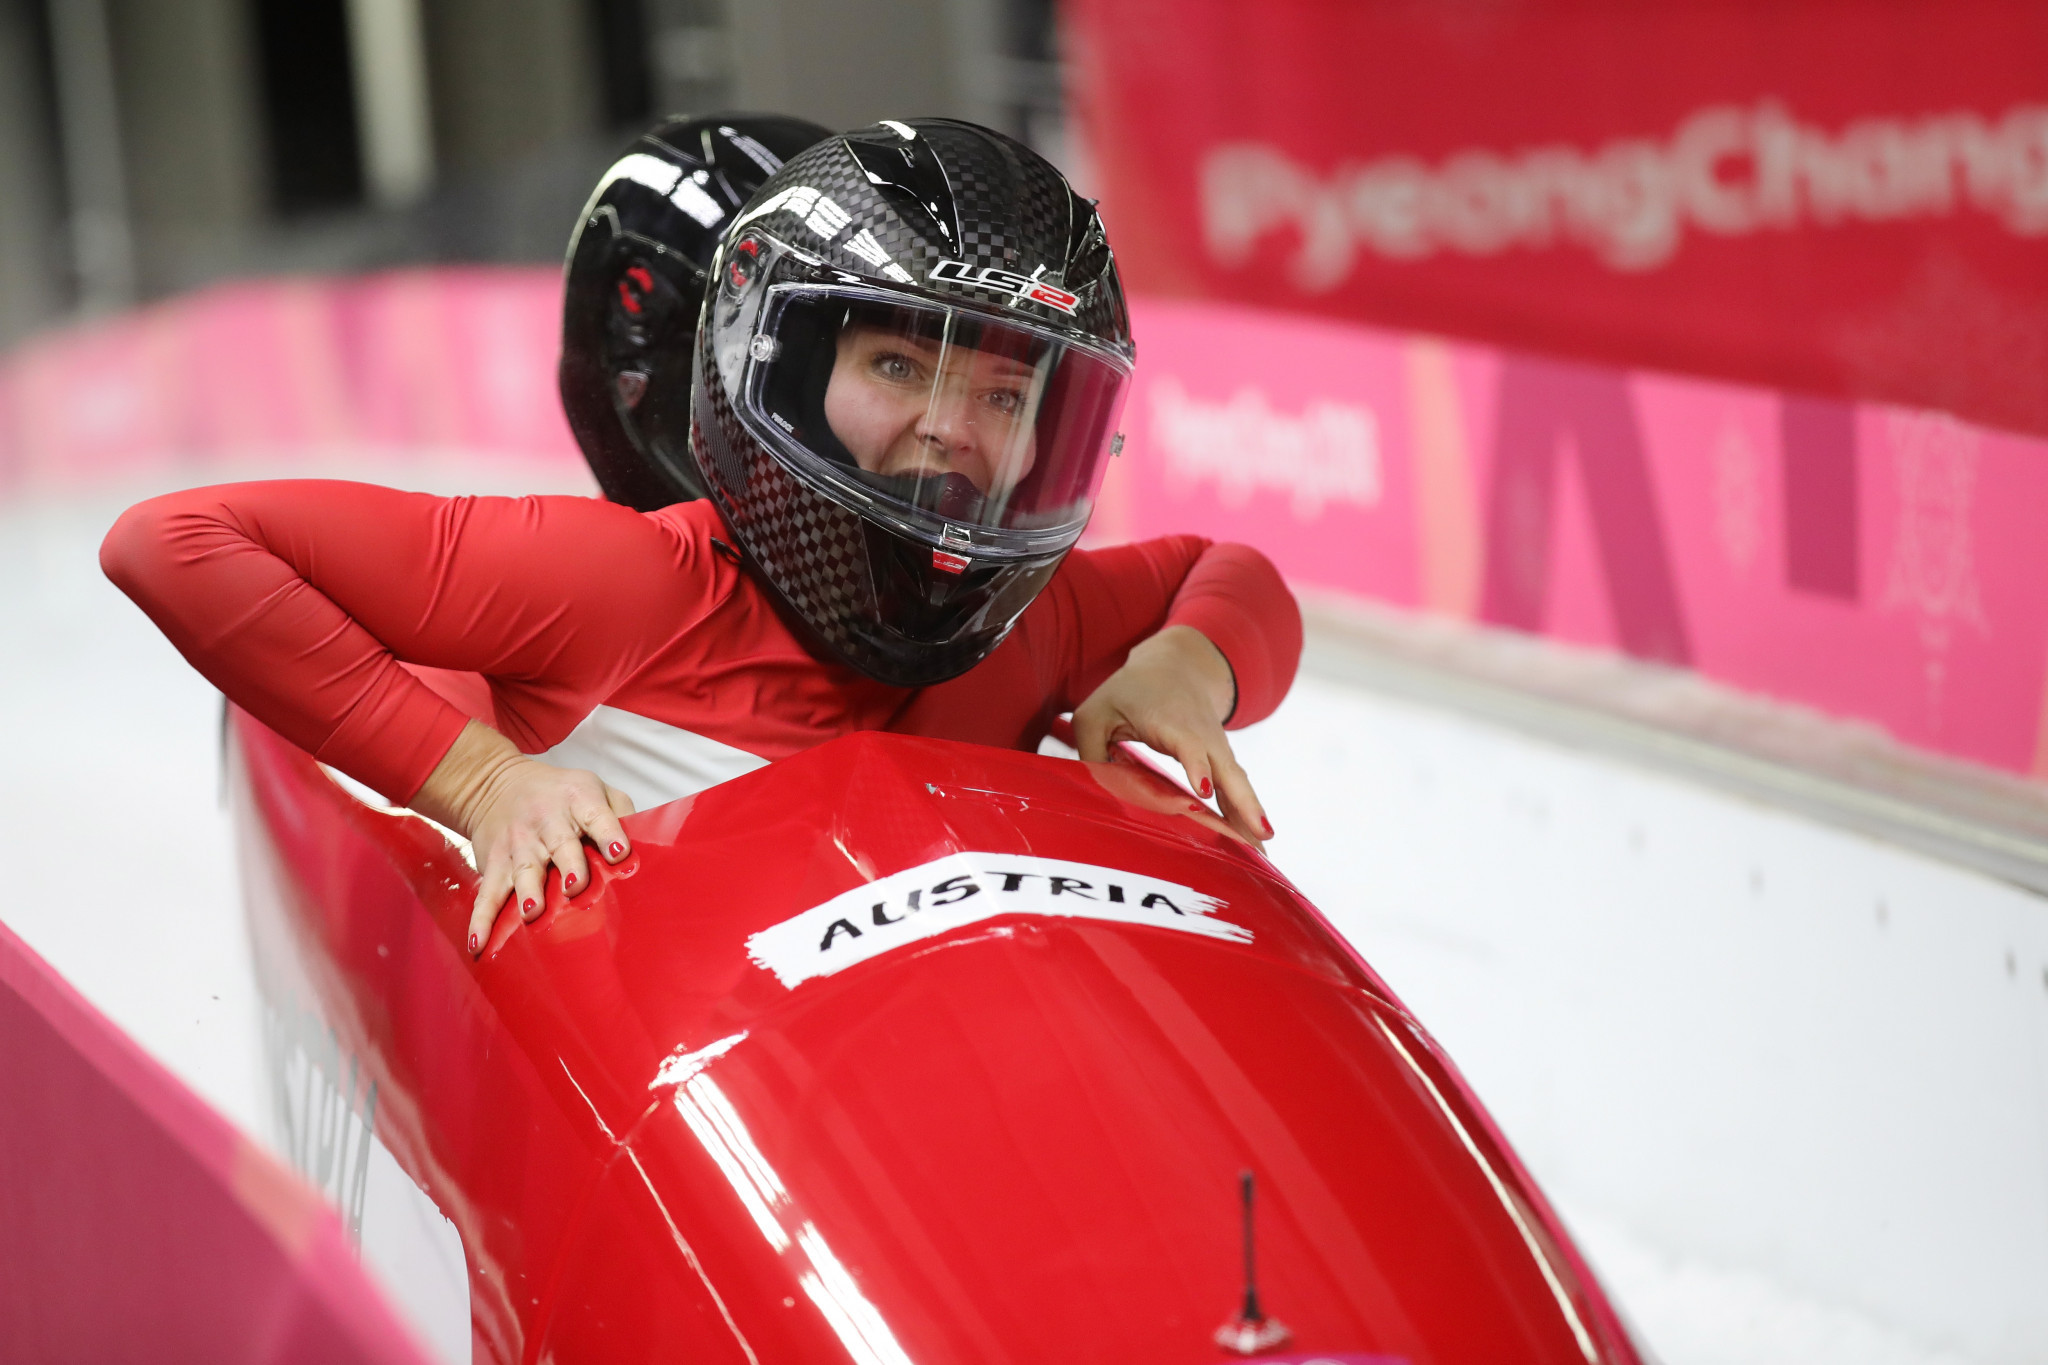 Christina Hengster has retired from bobsleigh ©Getty Images